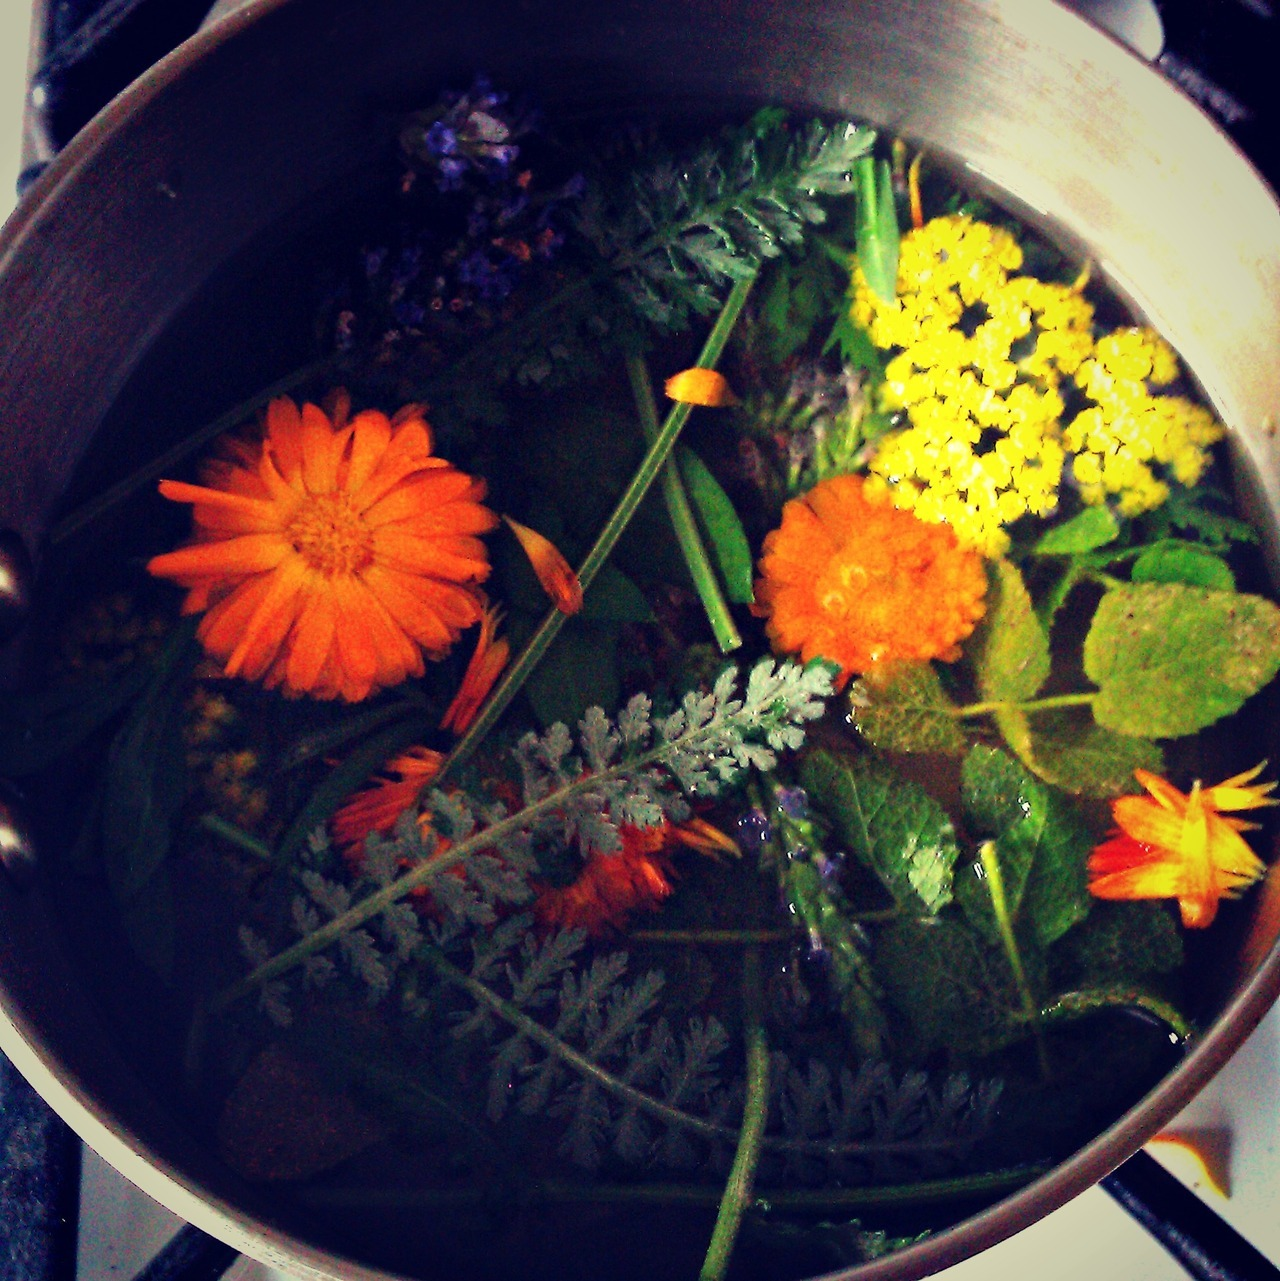 moon-medicine:  I made an Herbal Shampoo with my garden herbs yesterday :) An infusion of Calendula, Moonshine Yarrow, Lavender, and Apple Mint plus two vitamin E capsules.